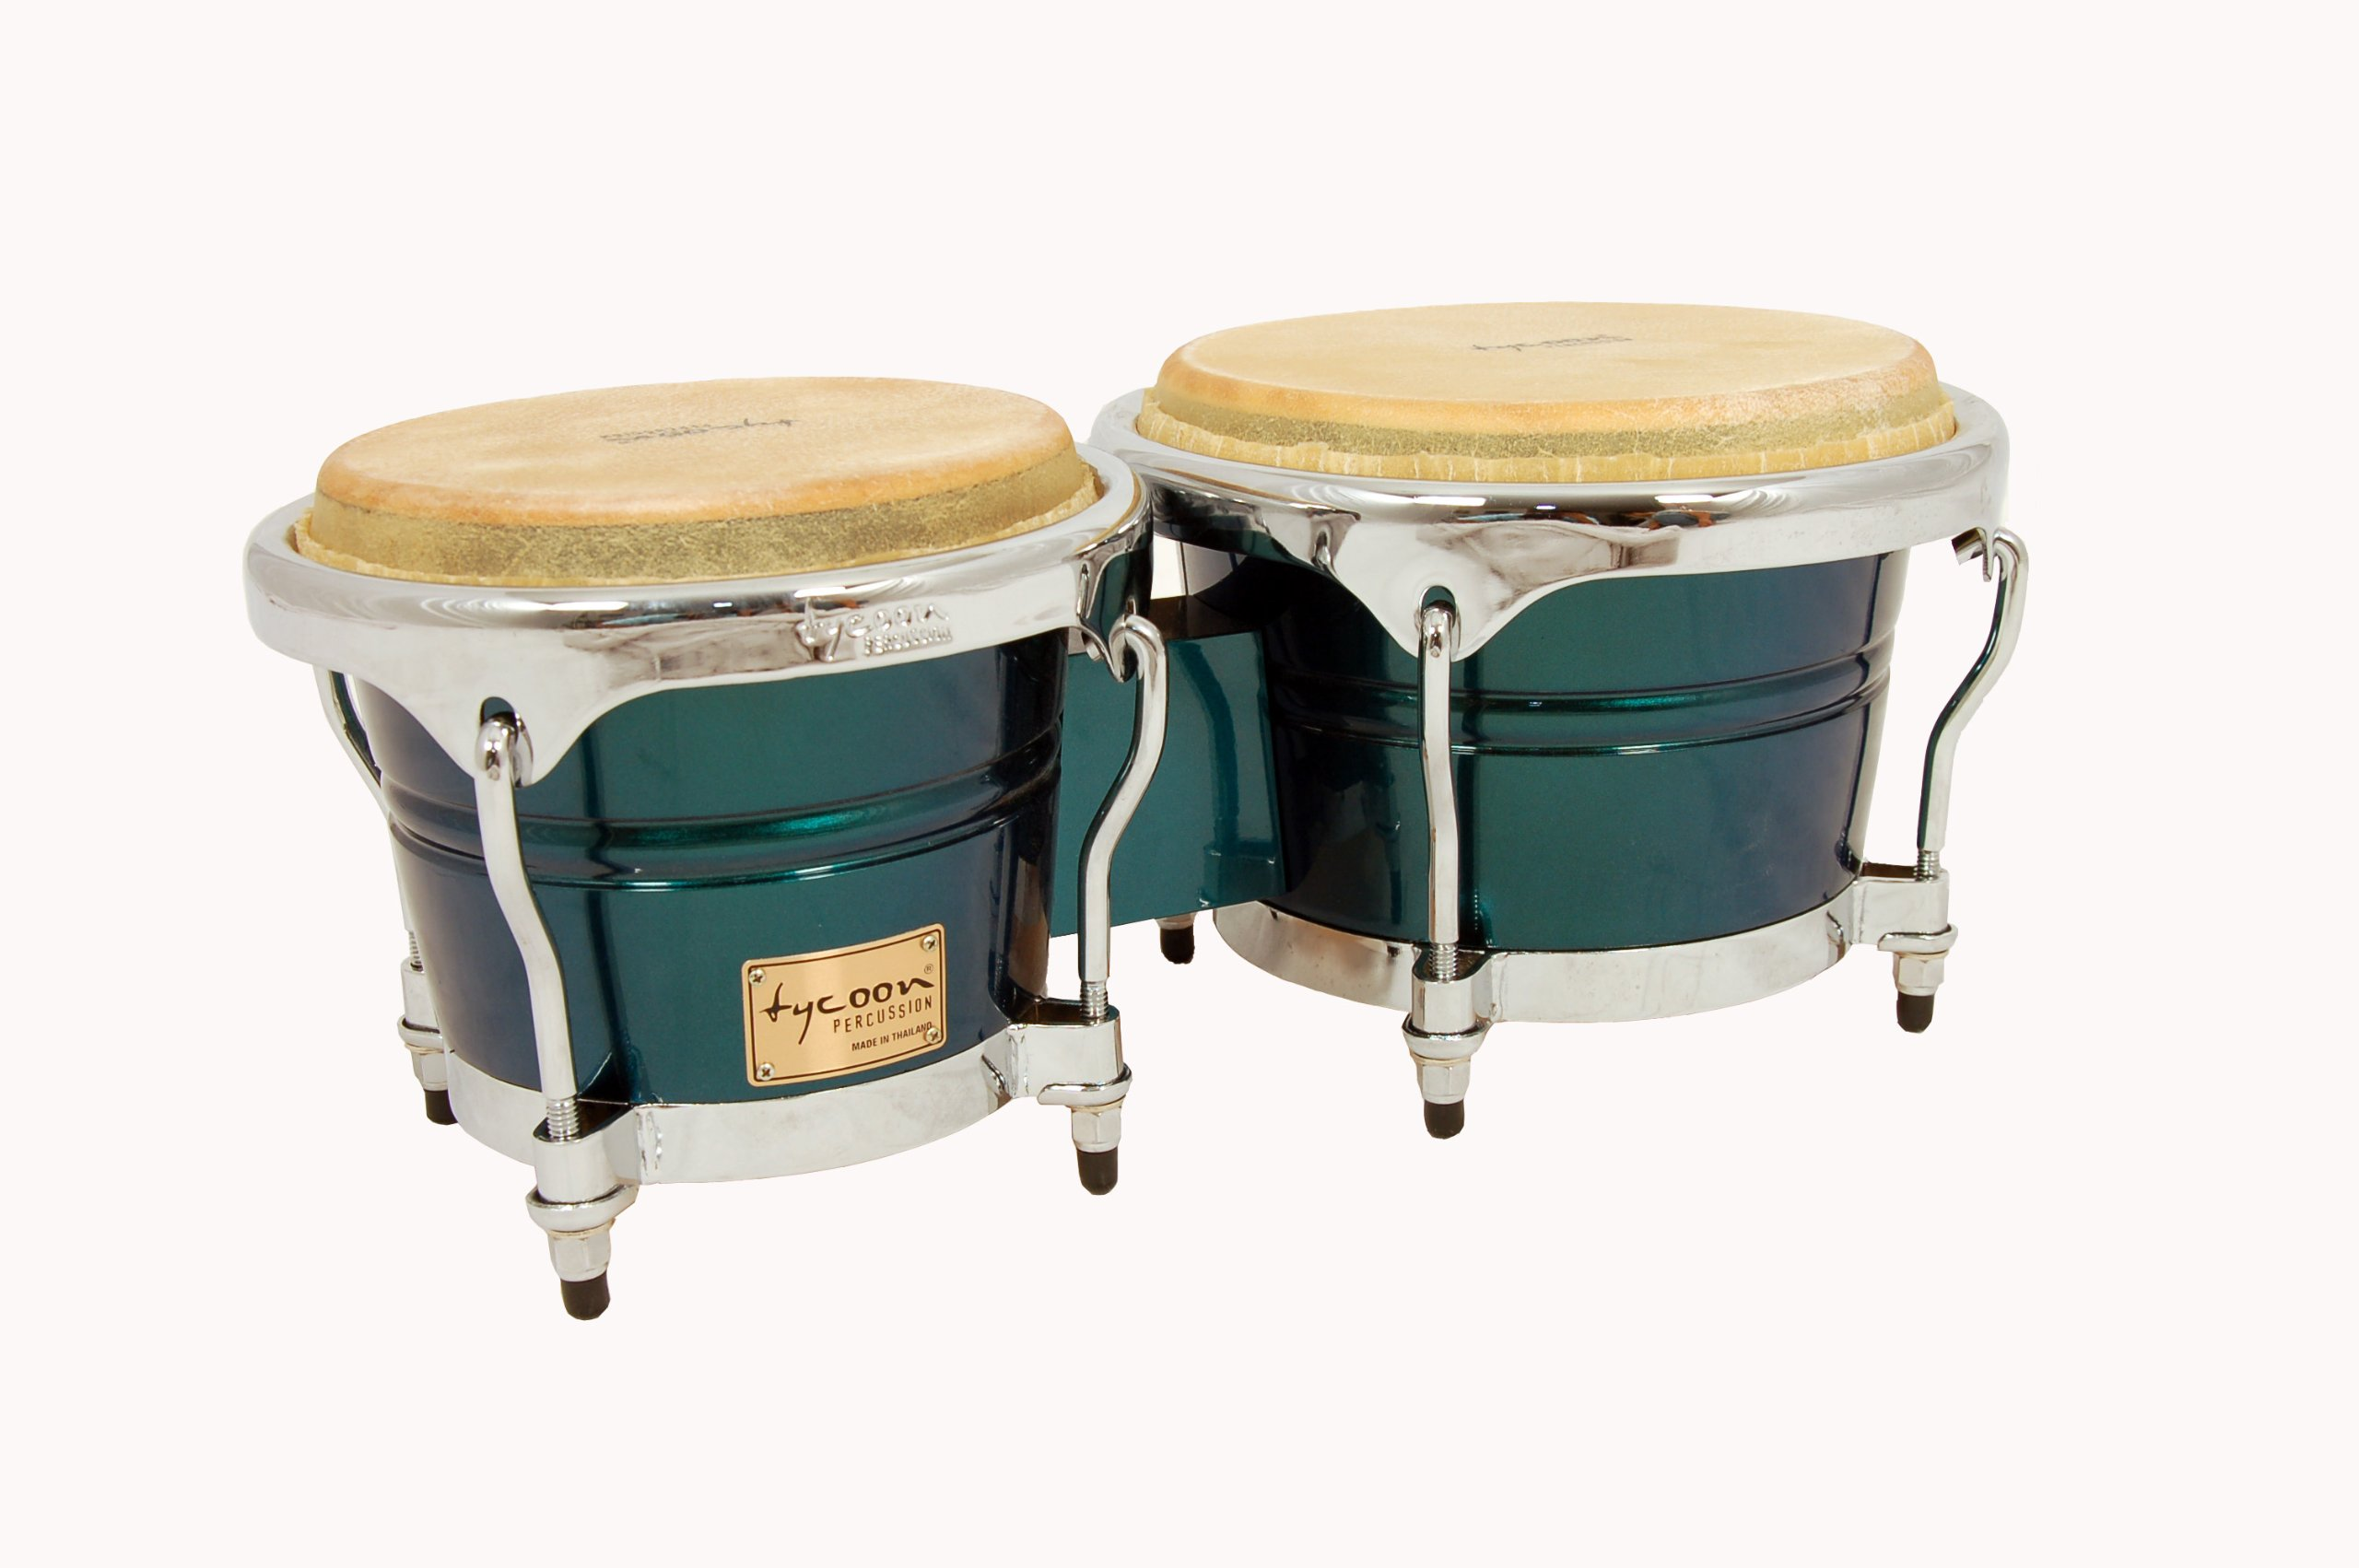 Tycoon Percussion 7 Inch & 8 1/2 Inch Concerto Series Bongos, Green Spectrum Finish